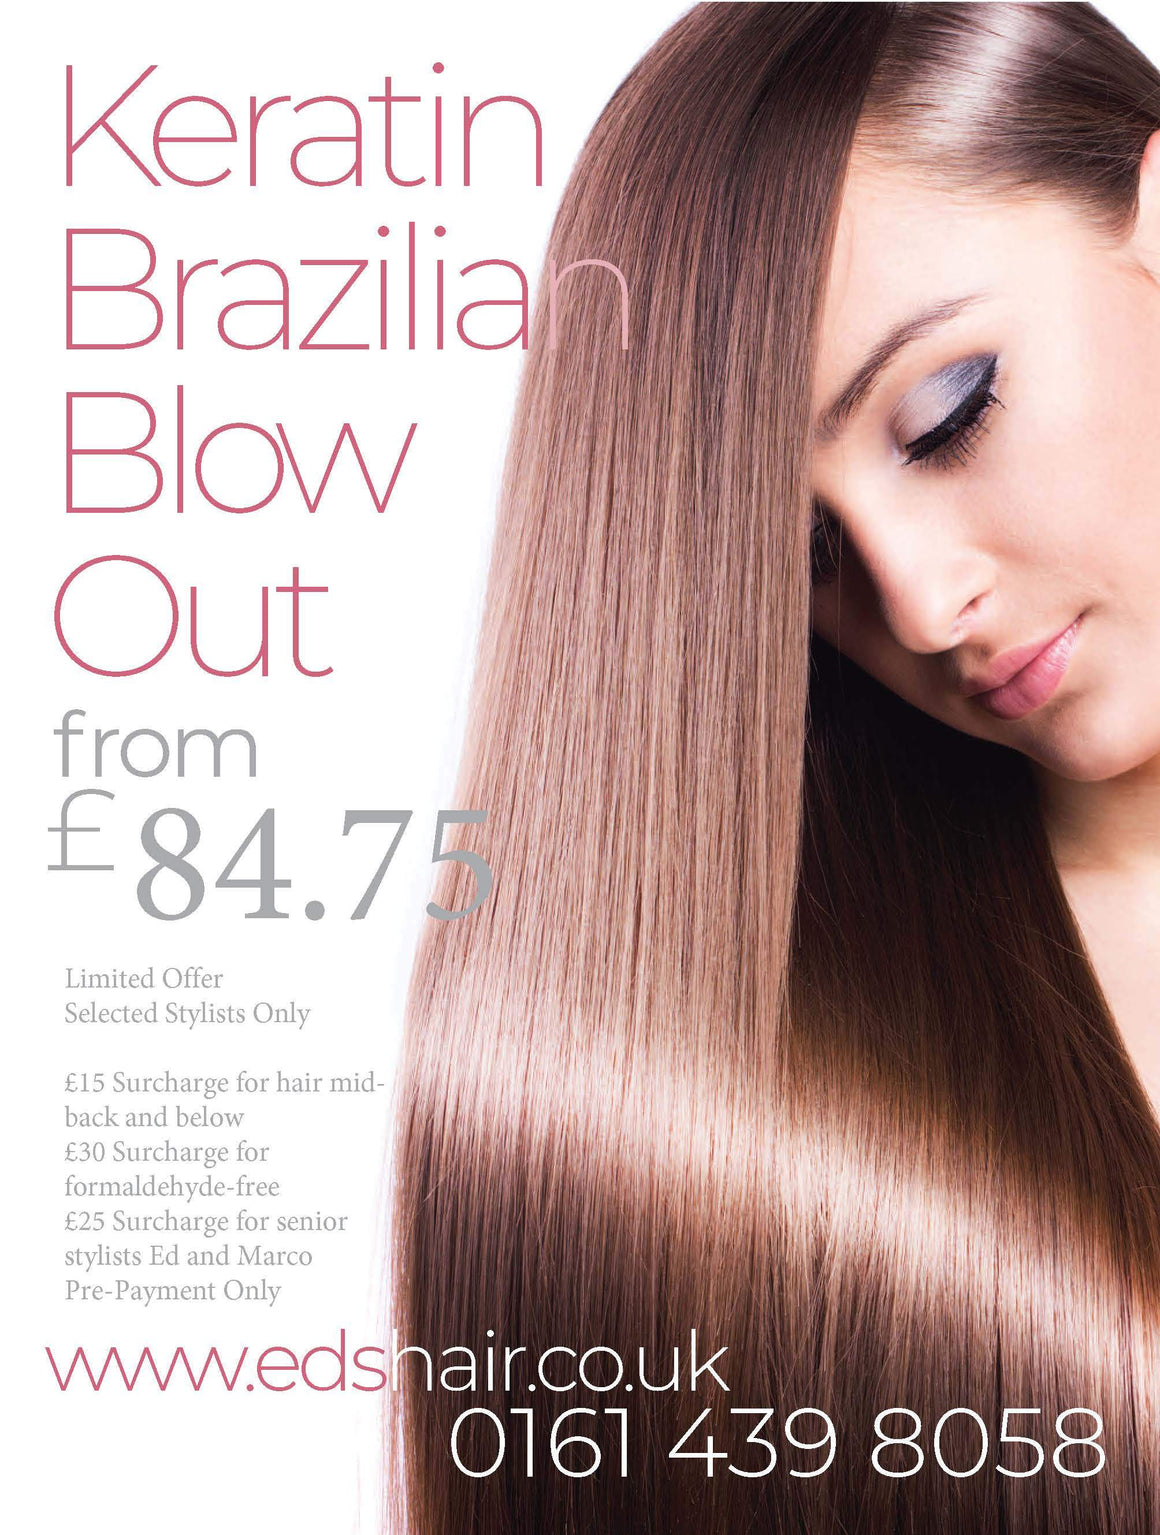 Brazilian Blow Dry January 2020 Promotion at Eds Hair Bramhall - Home of The Brazilian Blow Dry